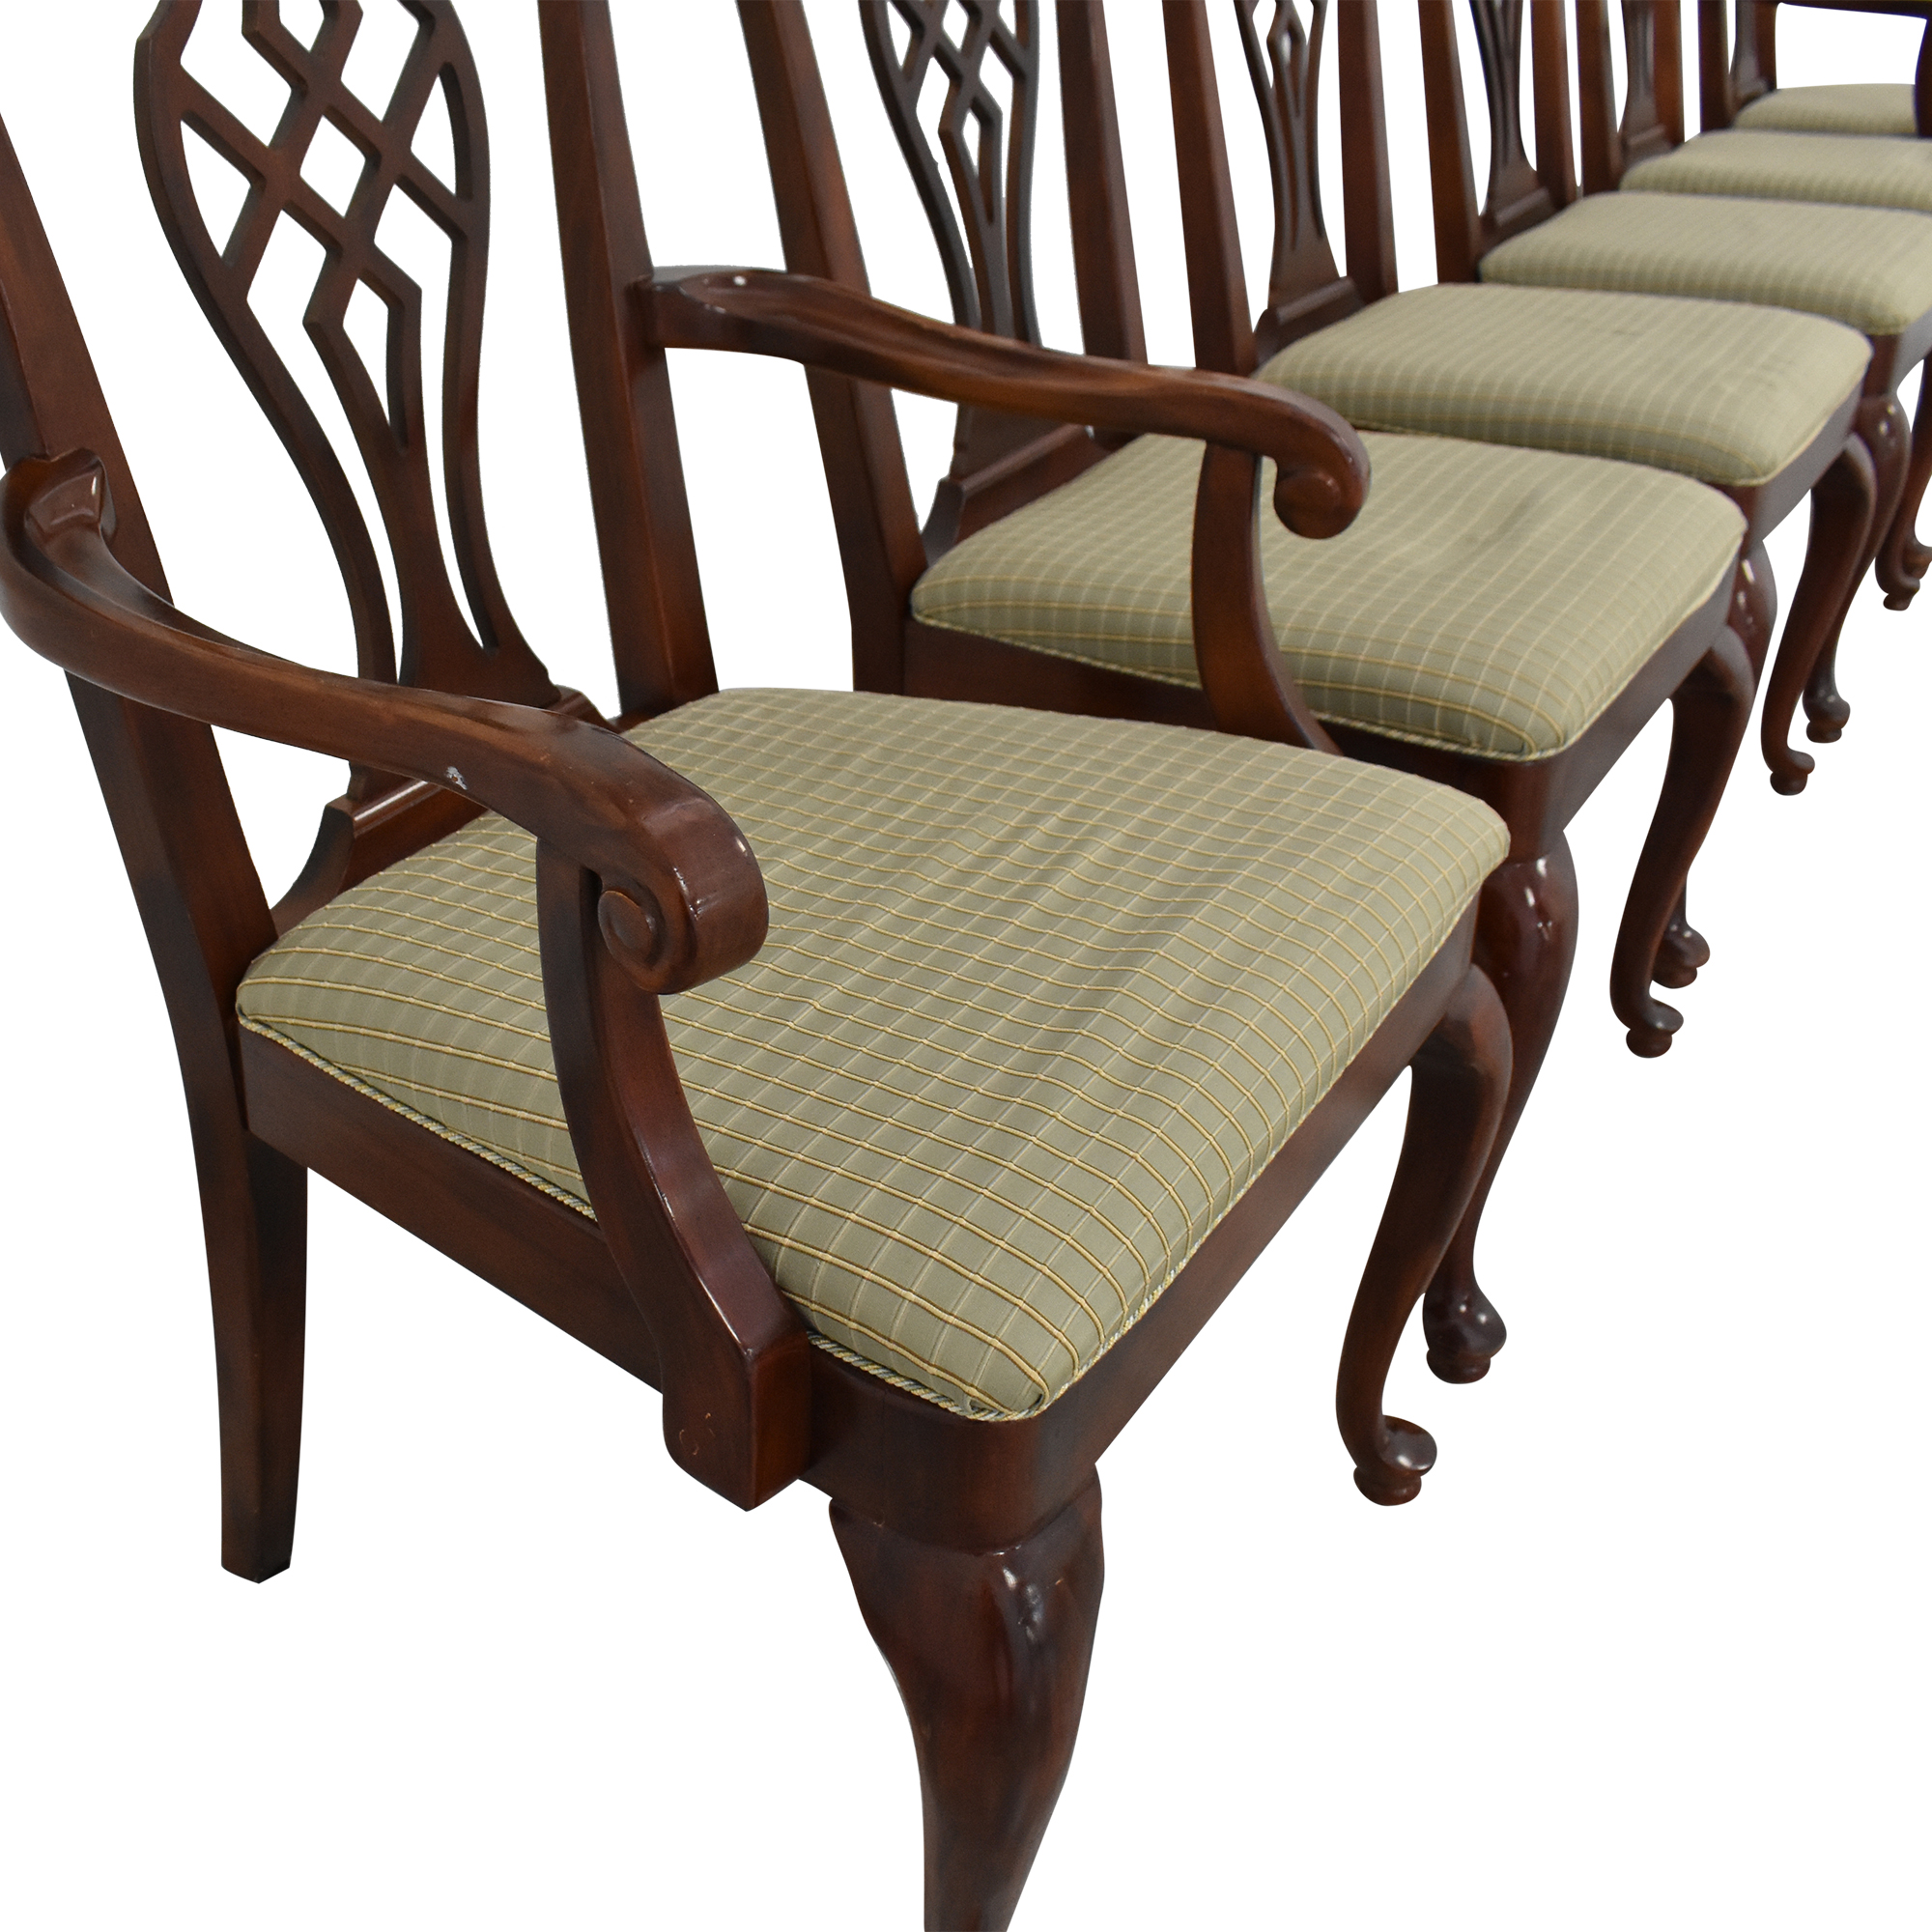 Drexel Heritage Drexel Upholstered Dining Chairs Dining Chairs